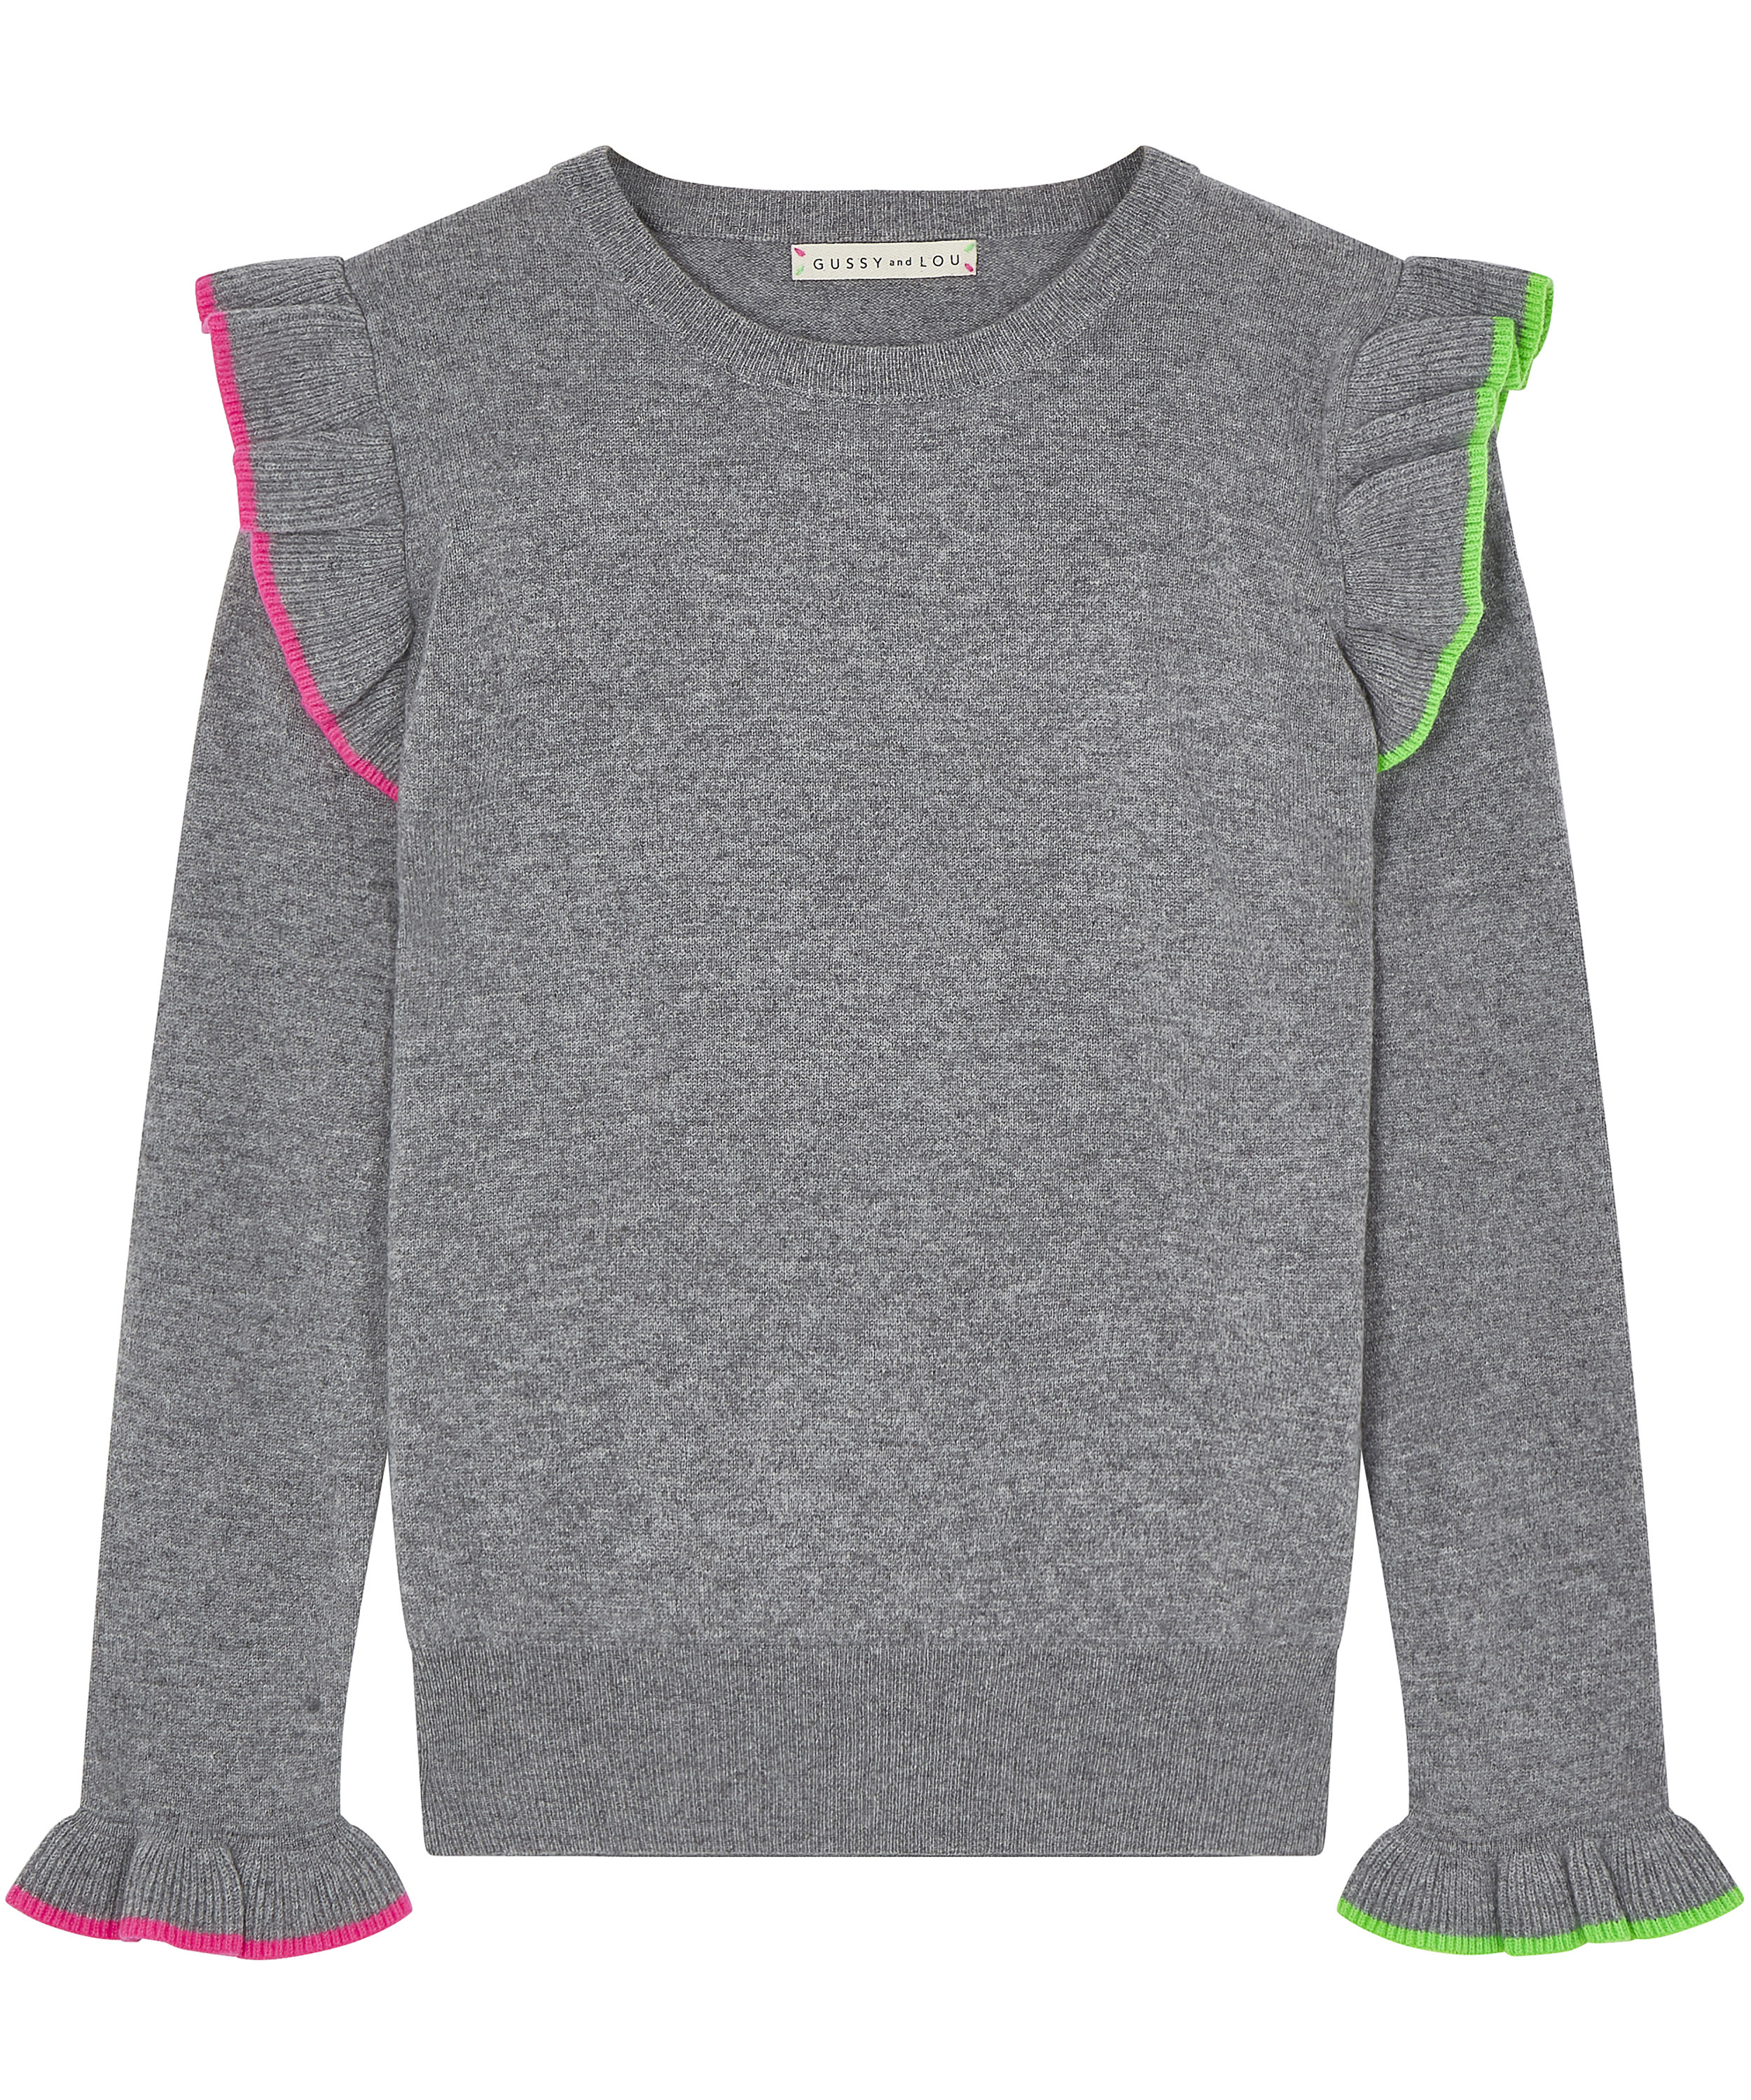 Ladies Grey Ruffle Cashmere Jumper — Gussy and Lou